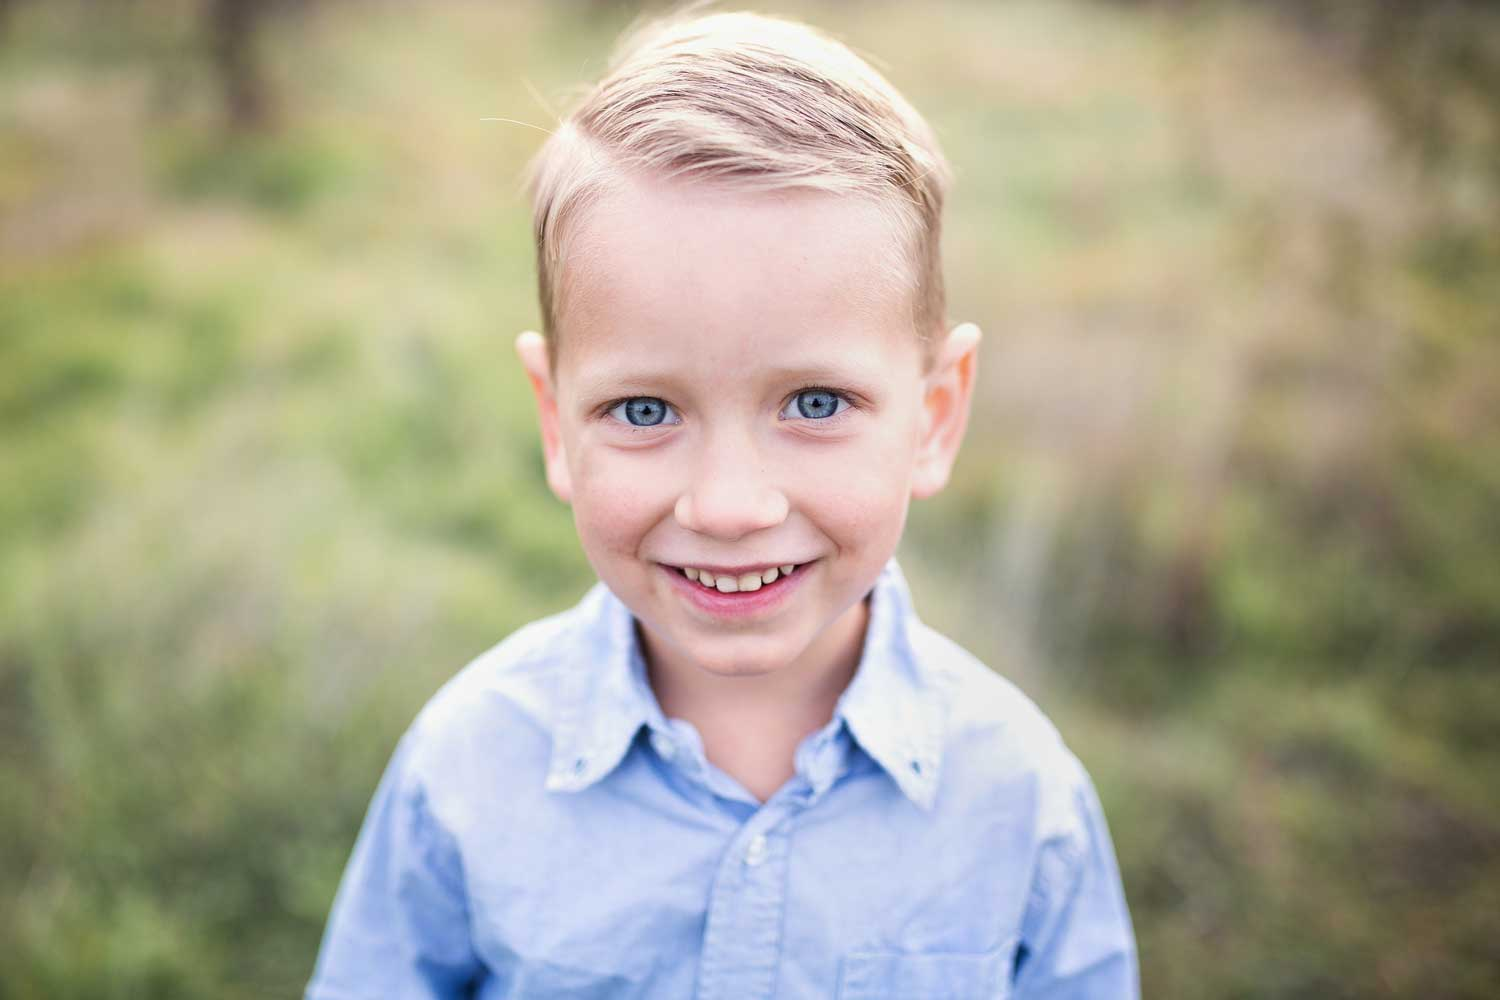 A young boy is smiling for the camera during a photo session with Amy Wright Photography in Roseville, California.